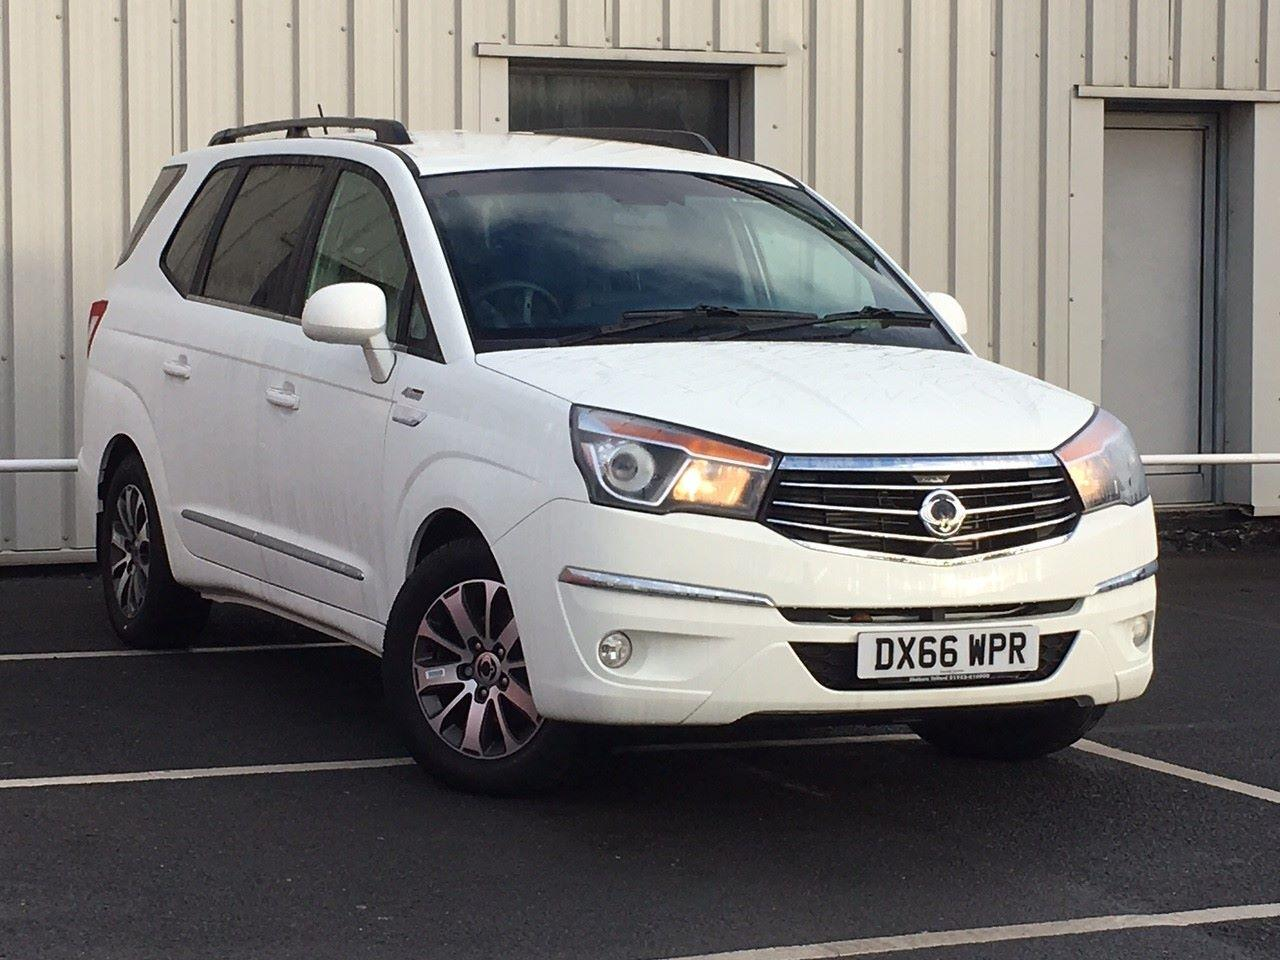 SsangYong Turismo 2.2 ELX 5dr Tip Auto 4WD MPV Diesel White